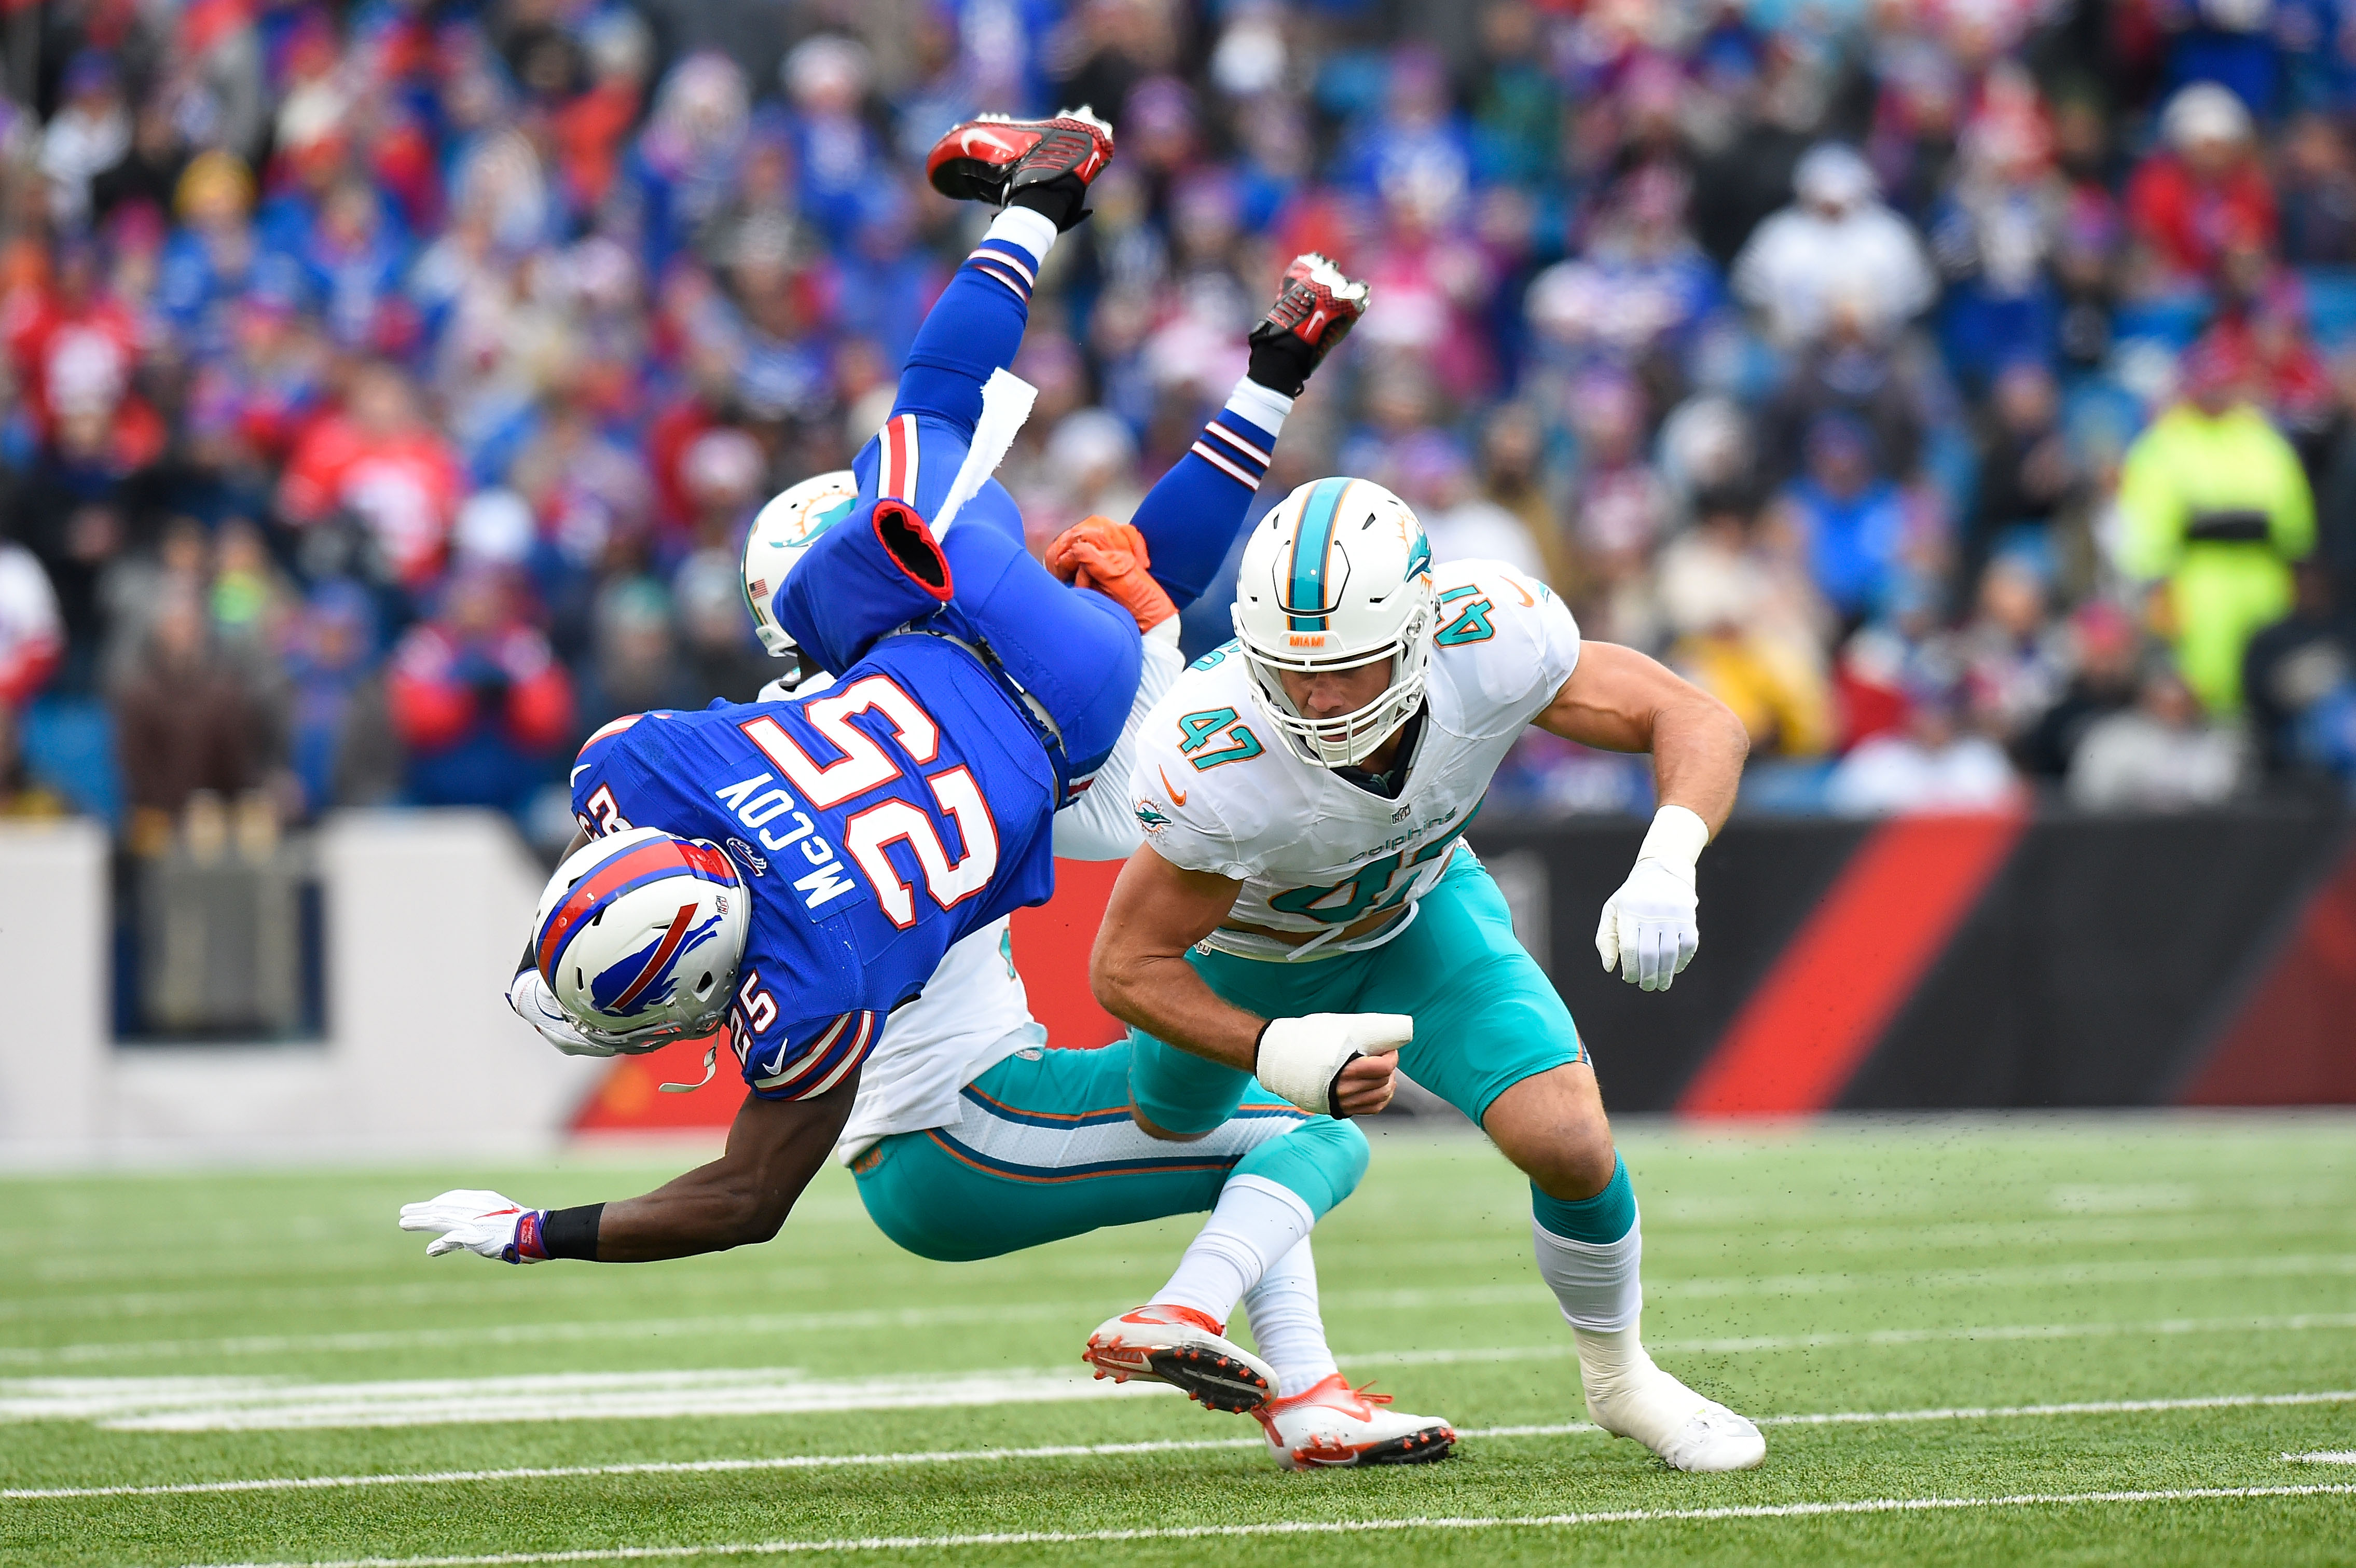 This photo of Dolphins linebacker Kiko Alonso tackling Bills running back LeSean McCoy has sparked a rivalry. (Getty Images)